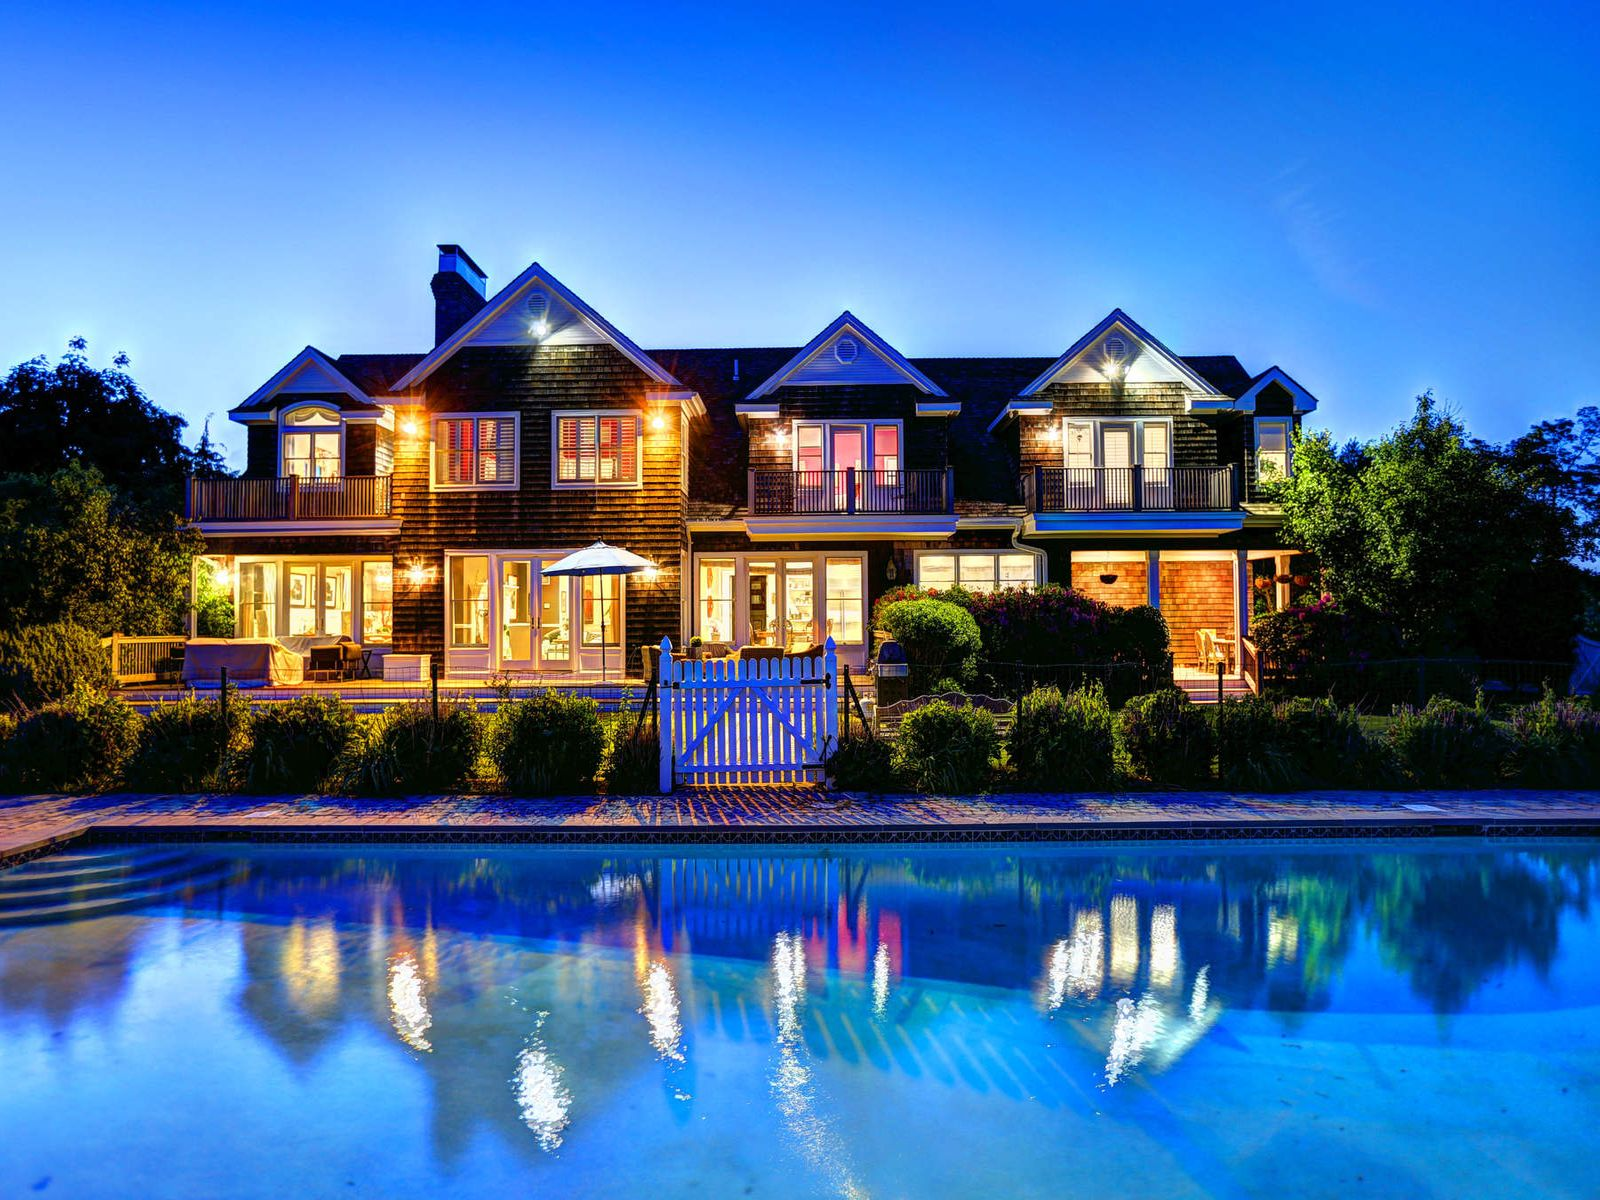 Water Mill - Tennis and Farmfield Vistas, Water Mill NY Single Family Home - Hamptons Real Estate